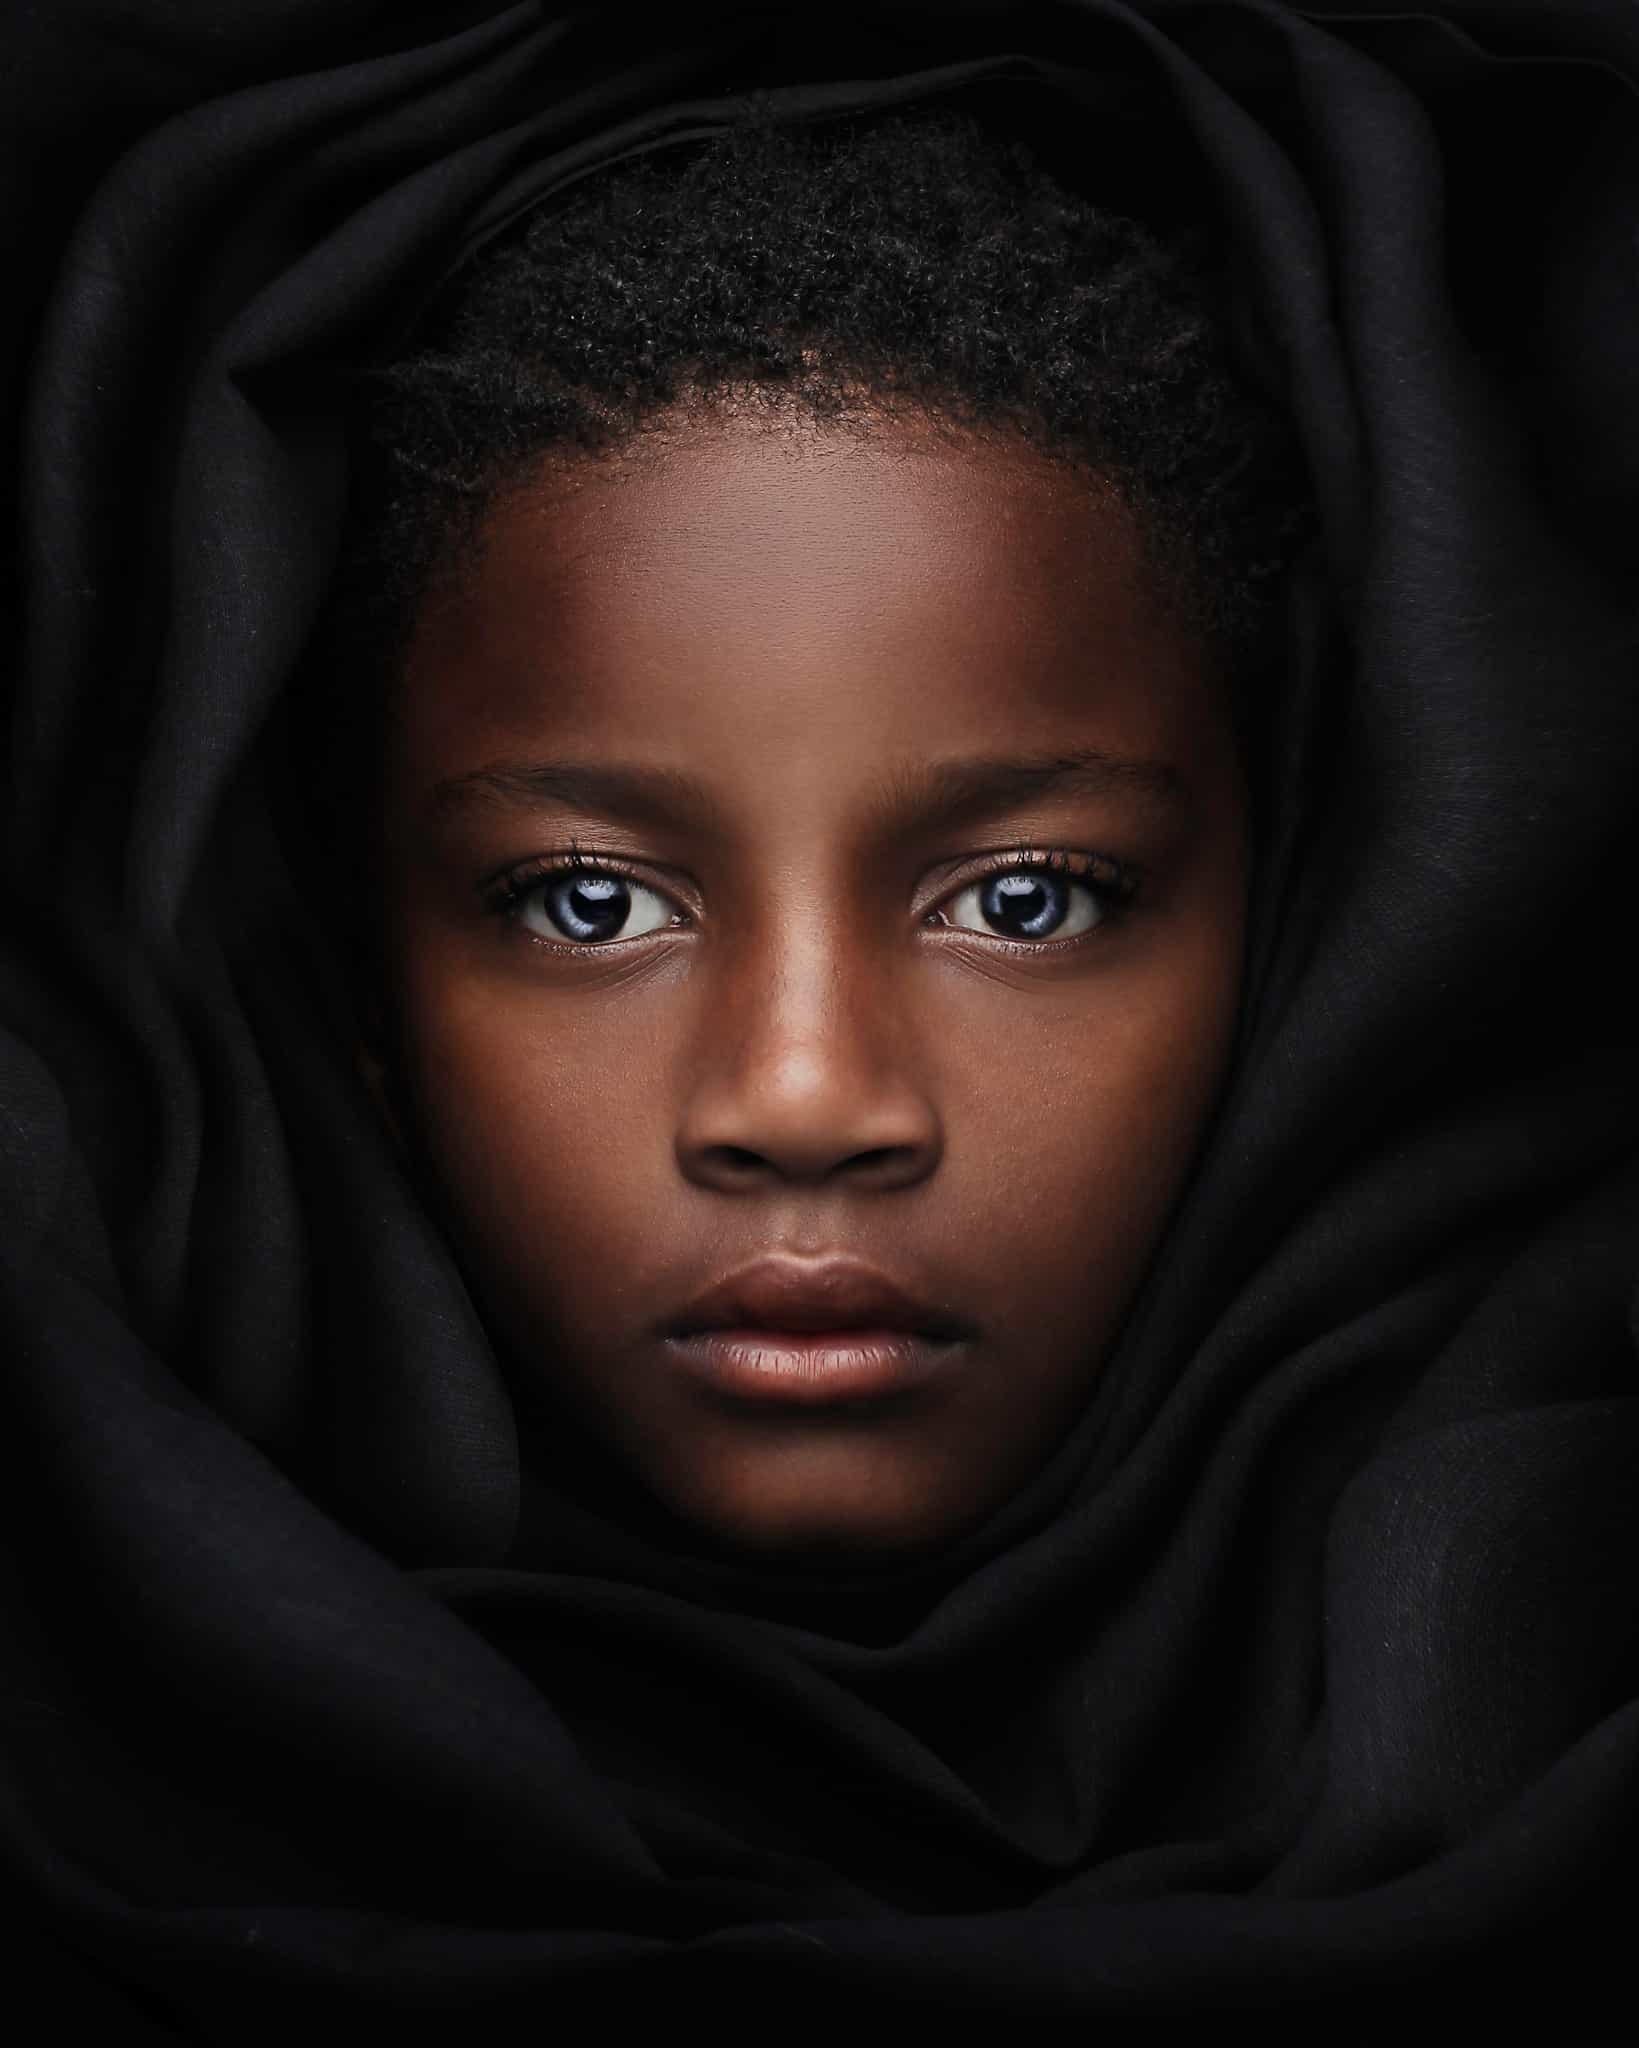 The 191 Most Outstanding Portrait Images Of 2019